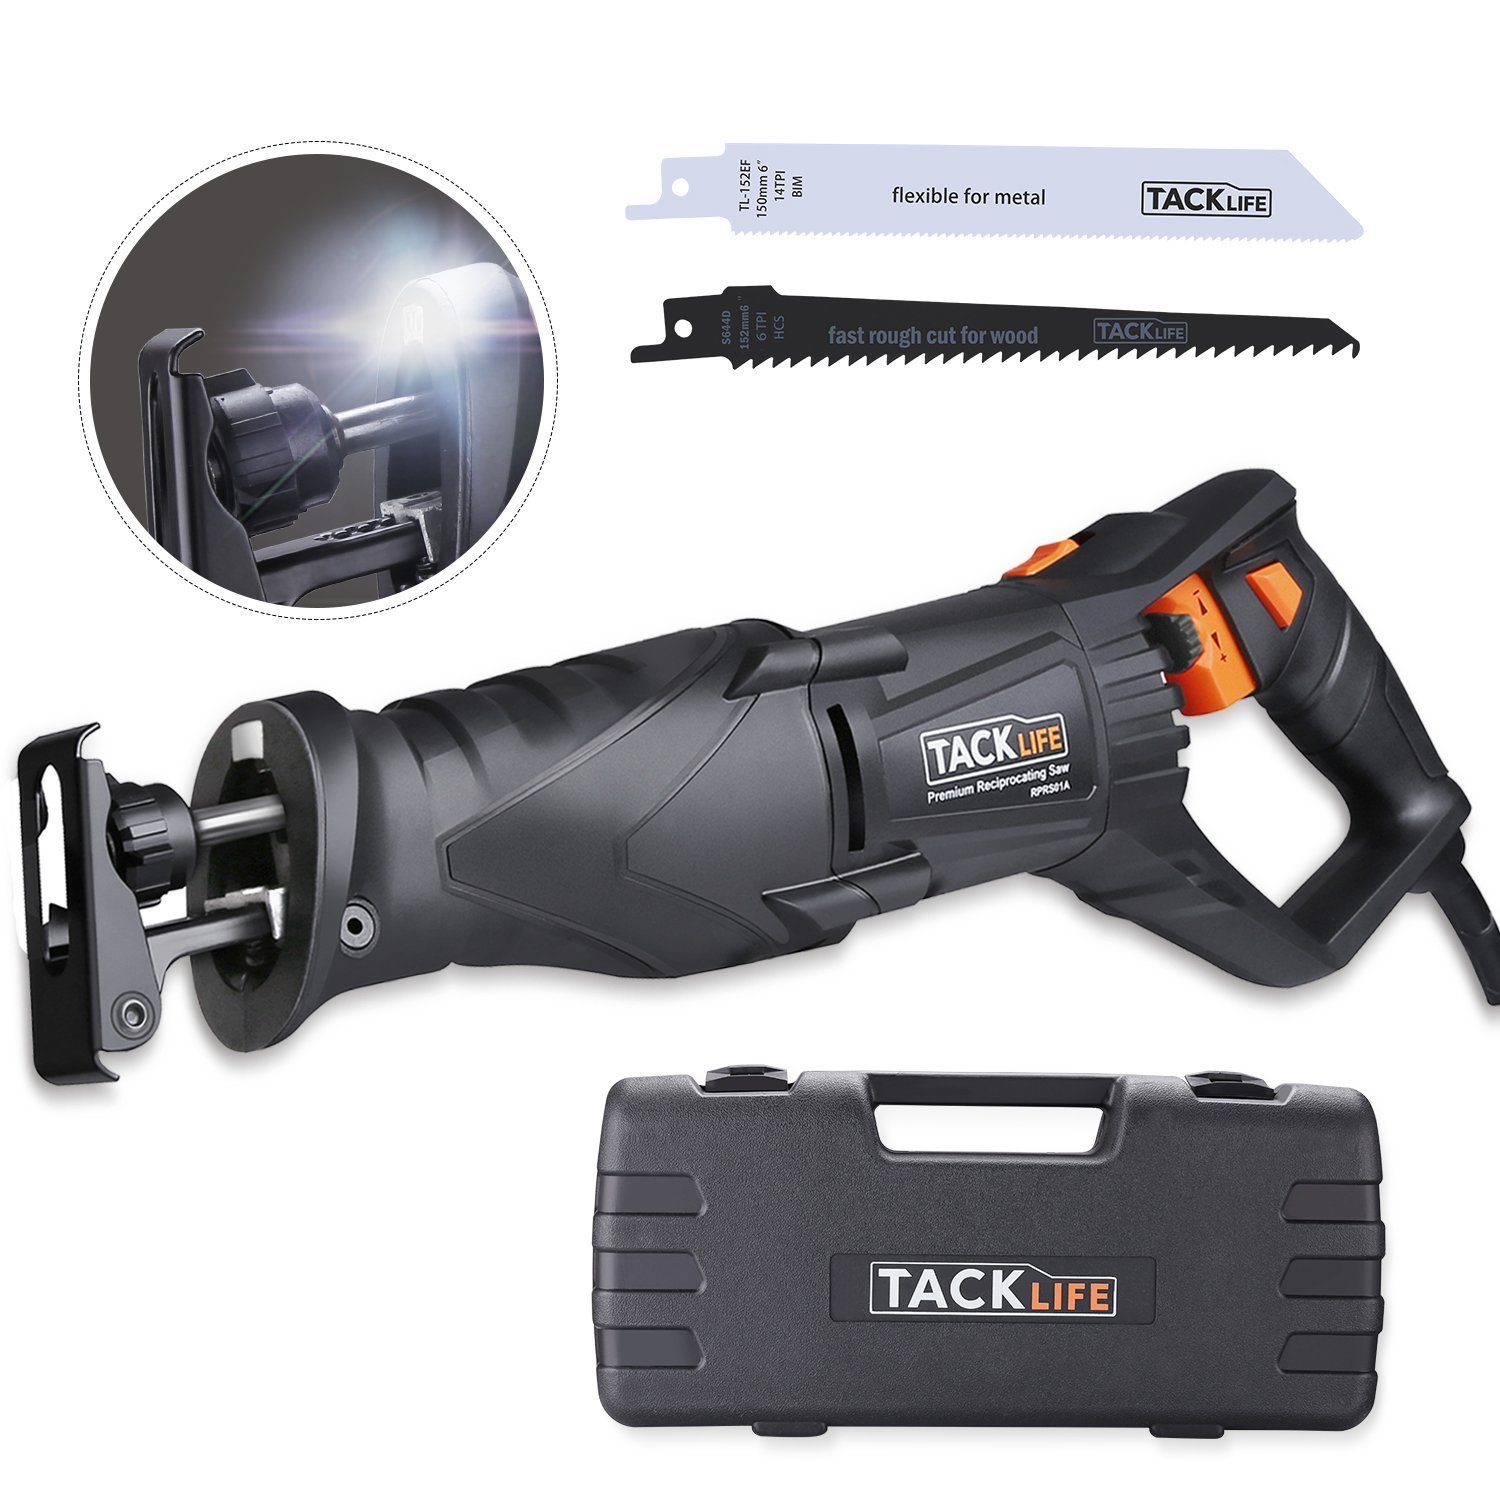 """TACKLIFE Classic Reciprocating Saw, 2800SPM 1-1/8""""(28mm) Stroke Length Electric Saw with Rotating Handle, Variable Speed, 10feet(3M) Cable, 2 LED, Extra 2 Blades, Carrying Case, Ideal for DIY"""